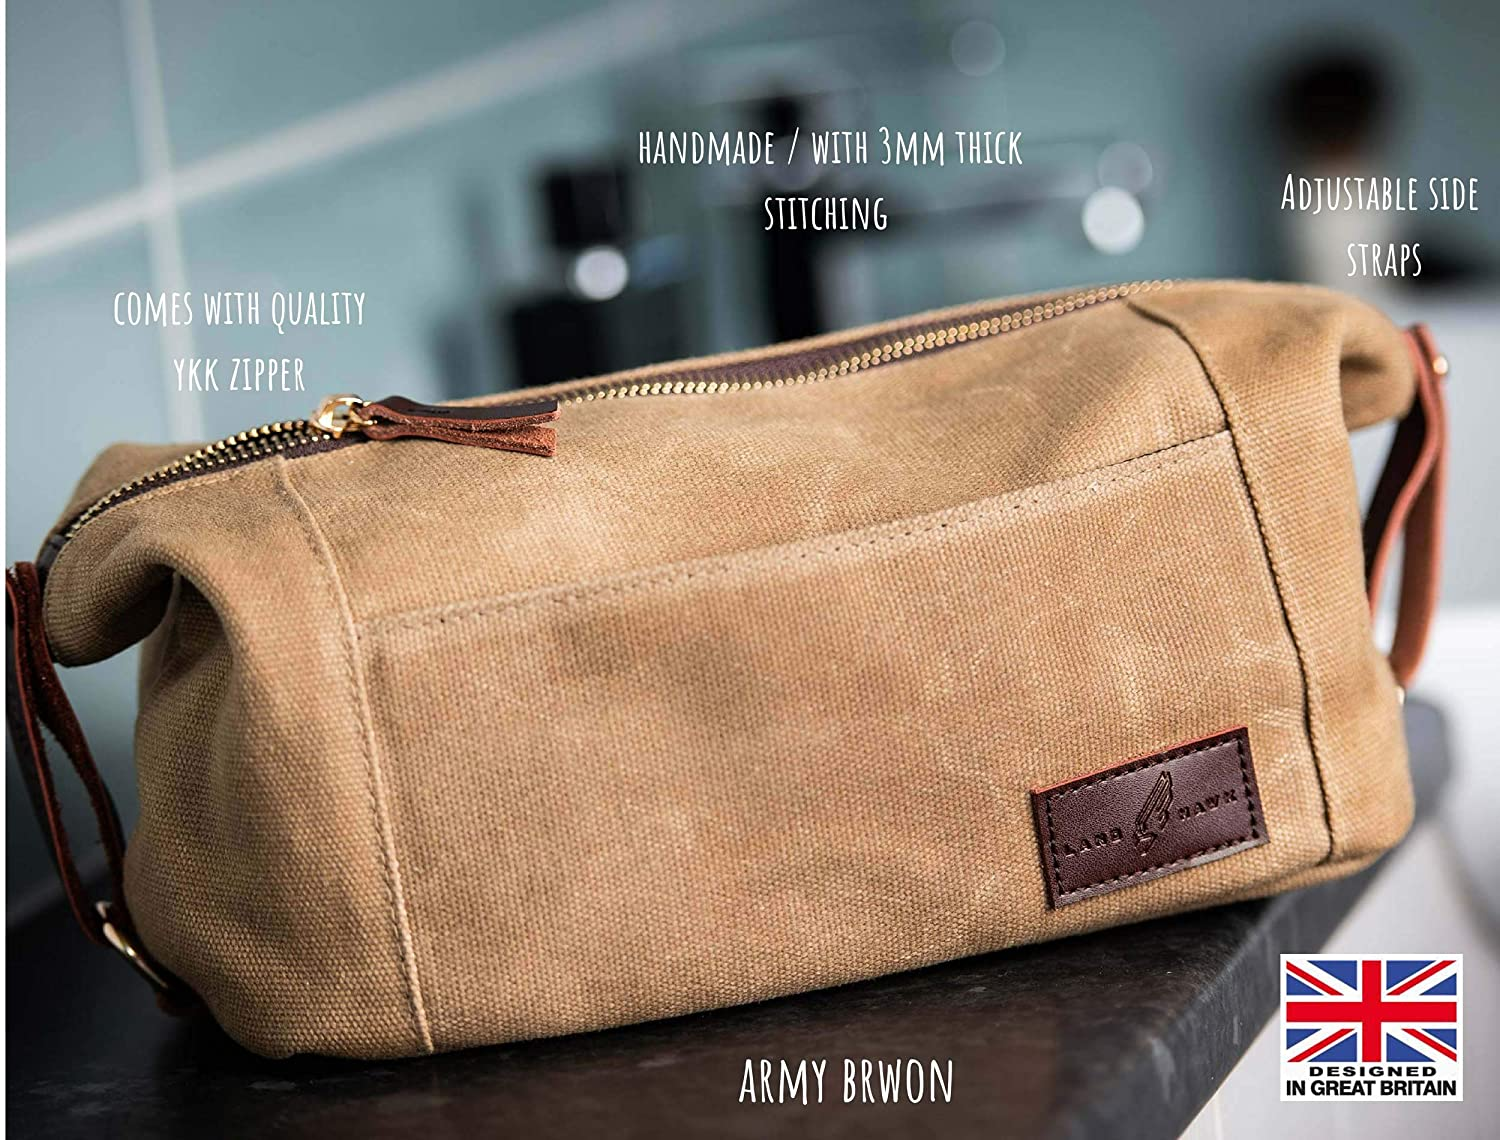 Durable Canvas From LANDHAWK Dopp Kit Army Brown Mens Toiletry Travel Bag YKK Zip Wash Bag